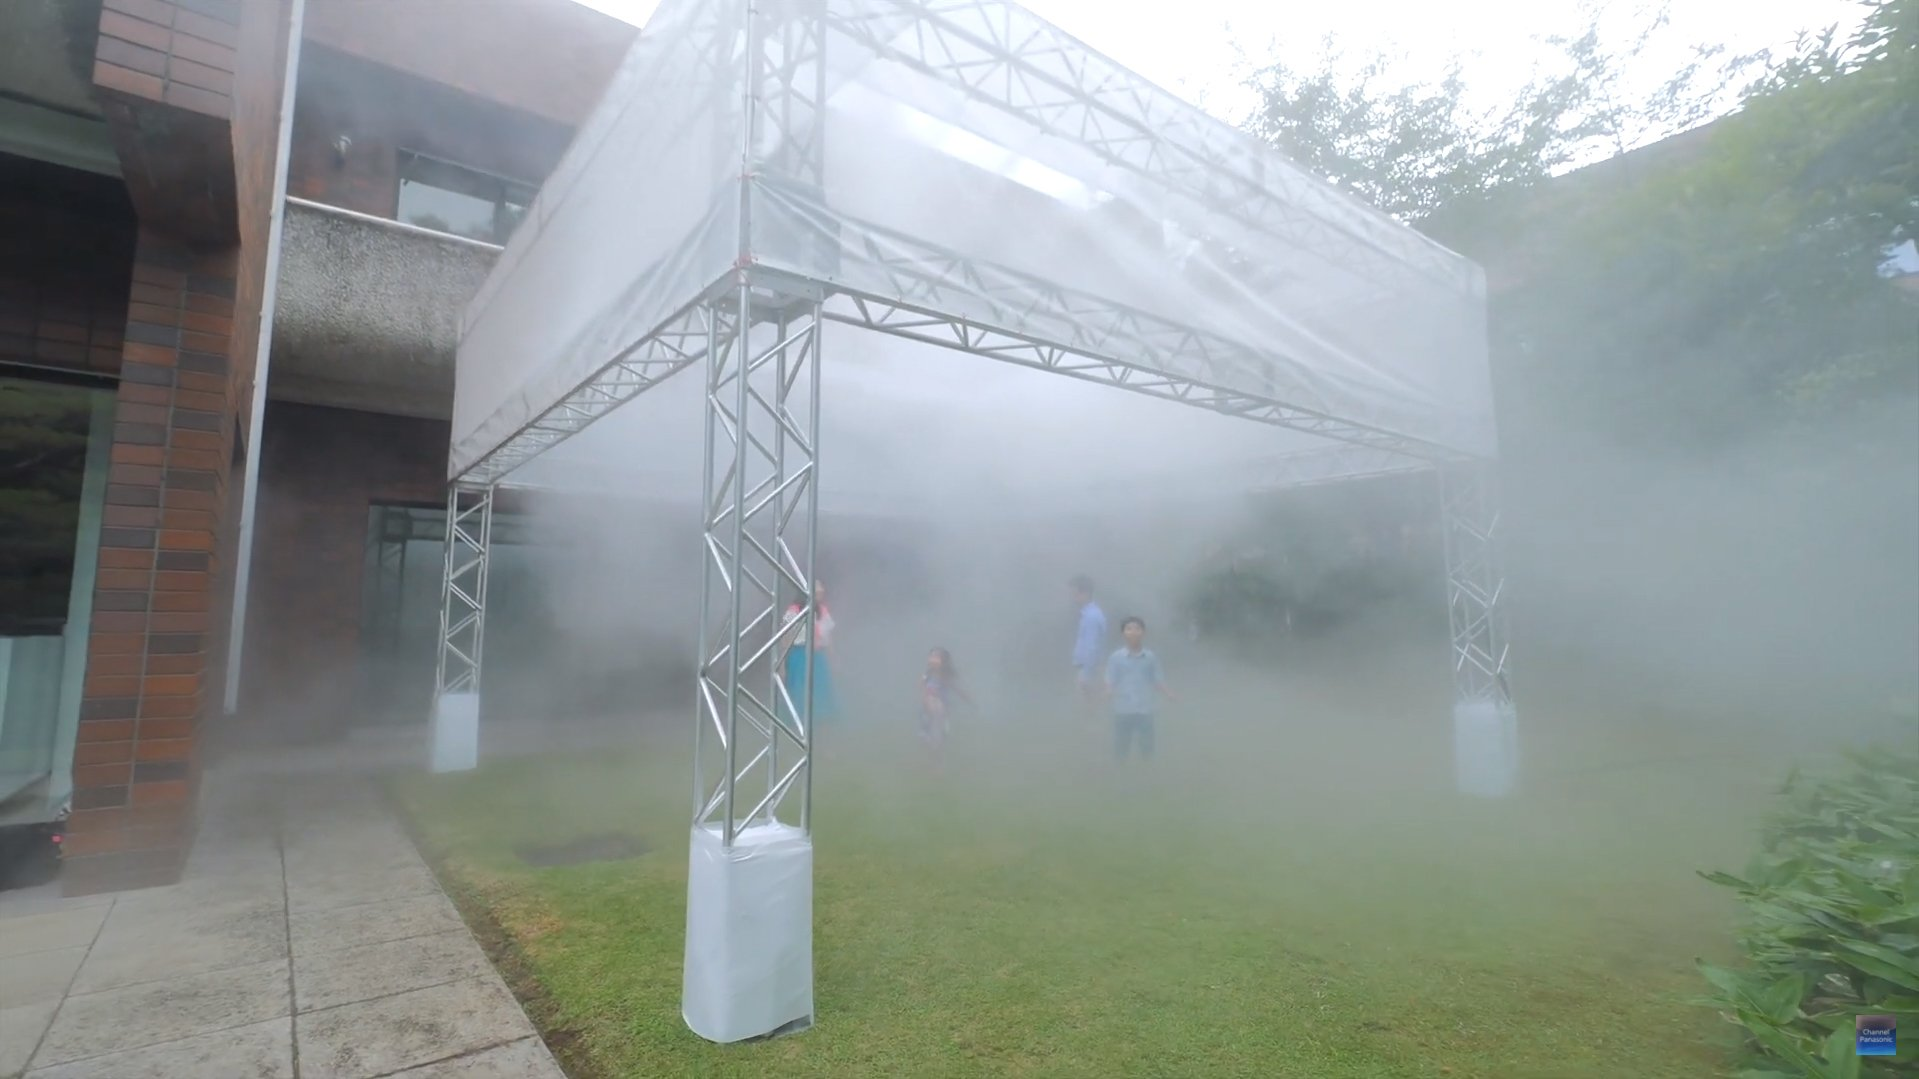 Photo: The demonstration experiment conducted in cooperation with the Obuchi Laboratory, Advanced Design Studies, Department of Architecture, Graduate School of Engineering, the University of Tokyo.